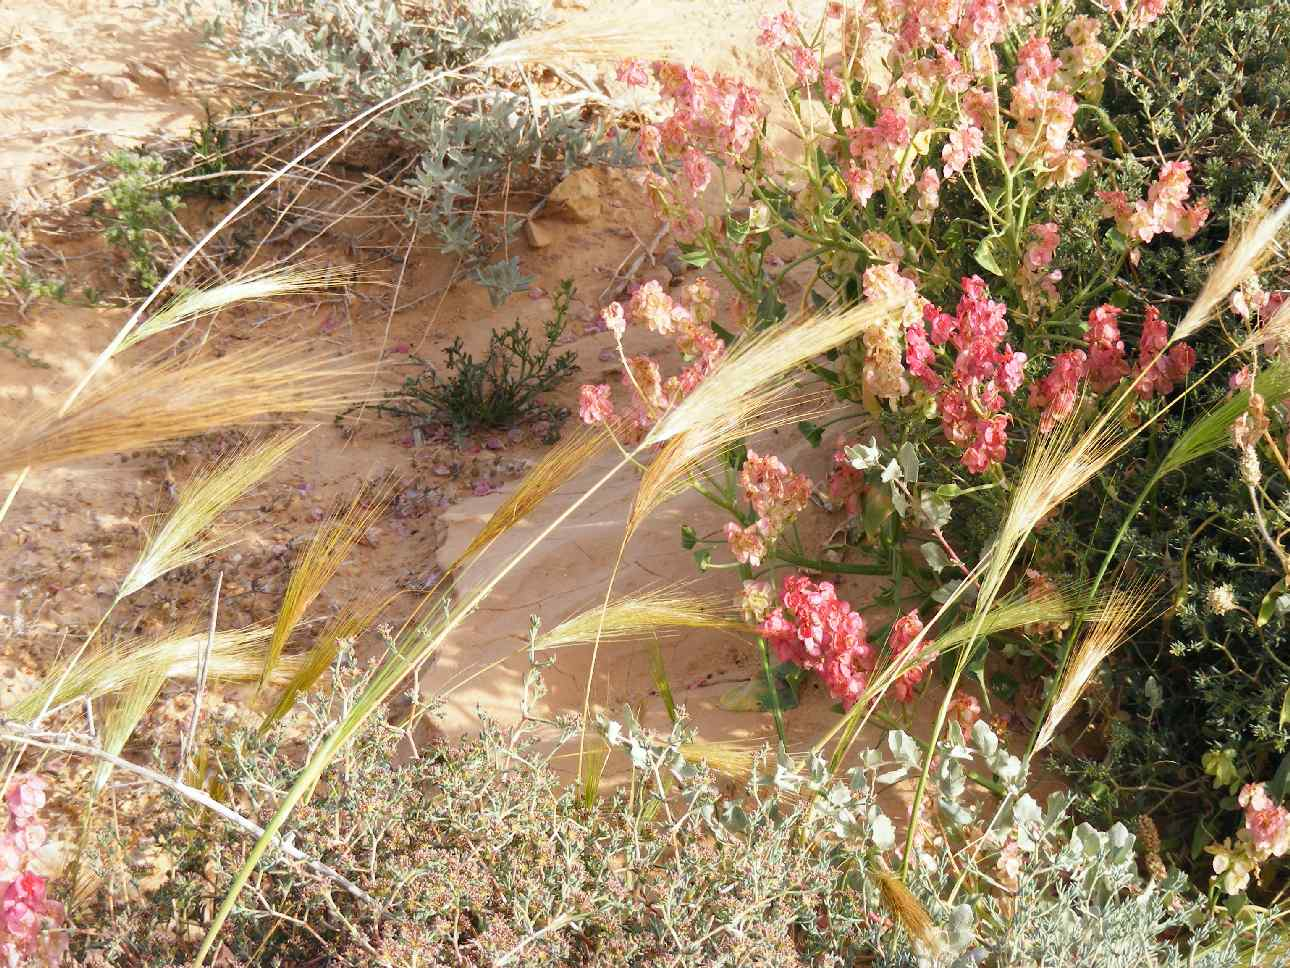 Grasses and flowers blooming in Arava desert following floods